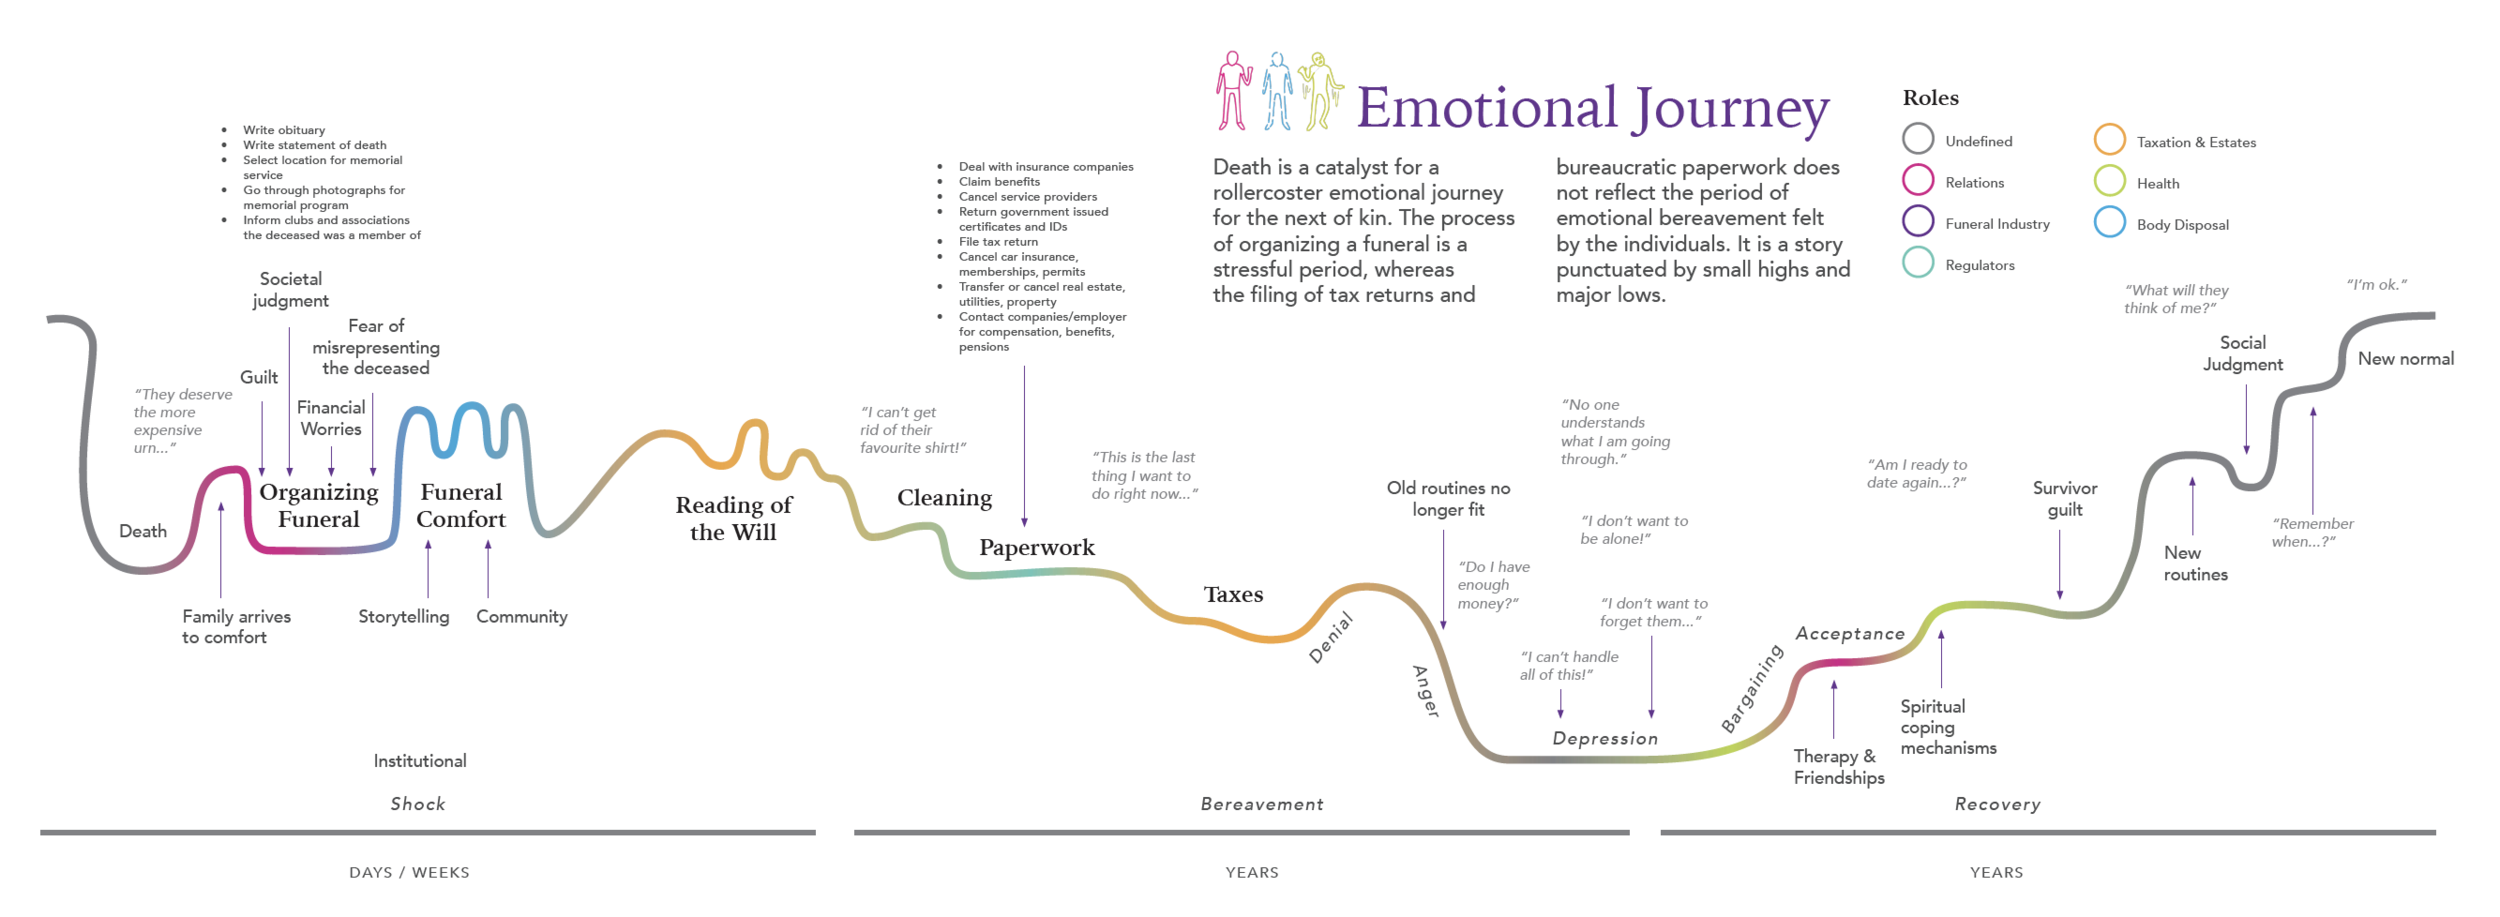 Excerpt of the gigamap showing an individual's emotional journey through legal and bureaucratic systems when dealing with the death of an individual.